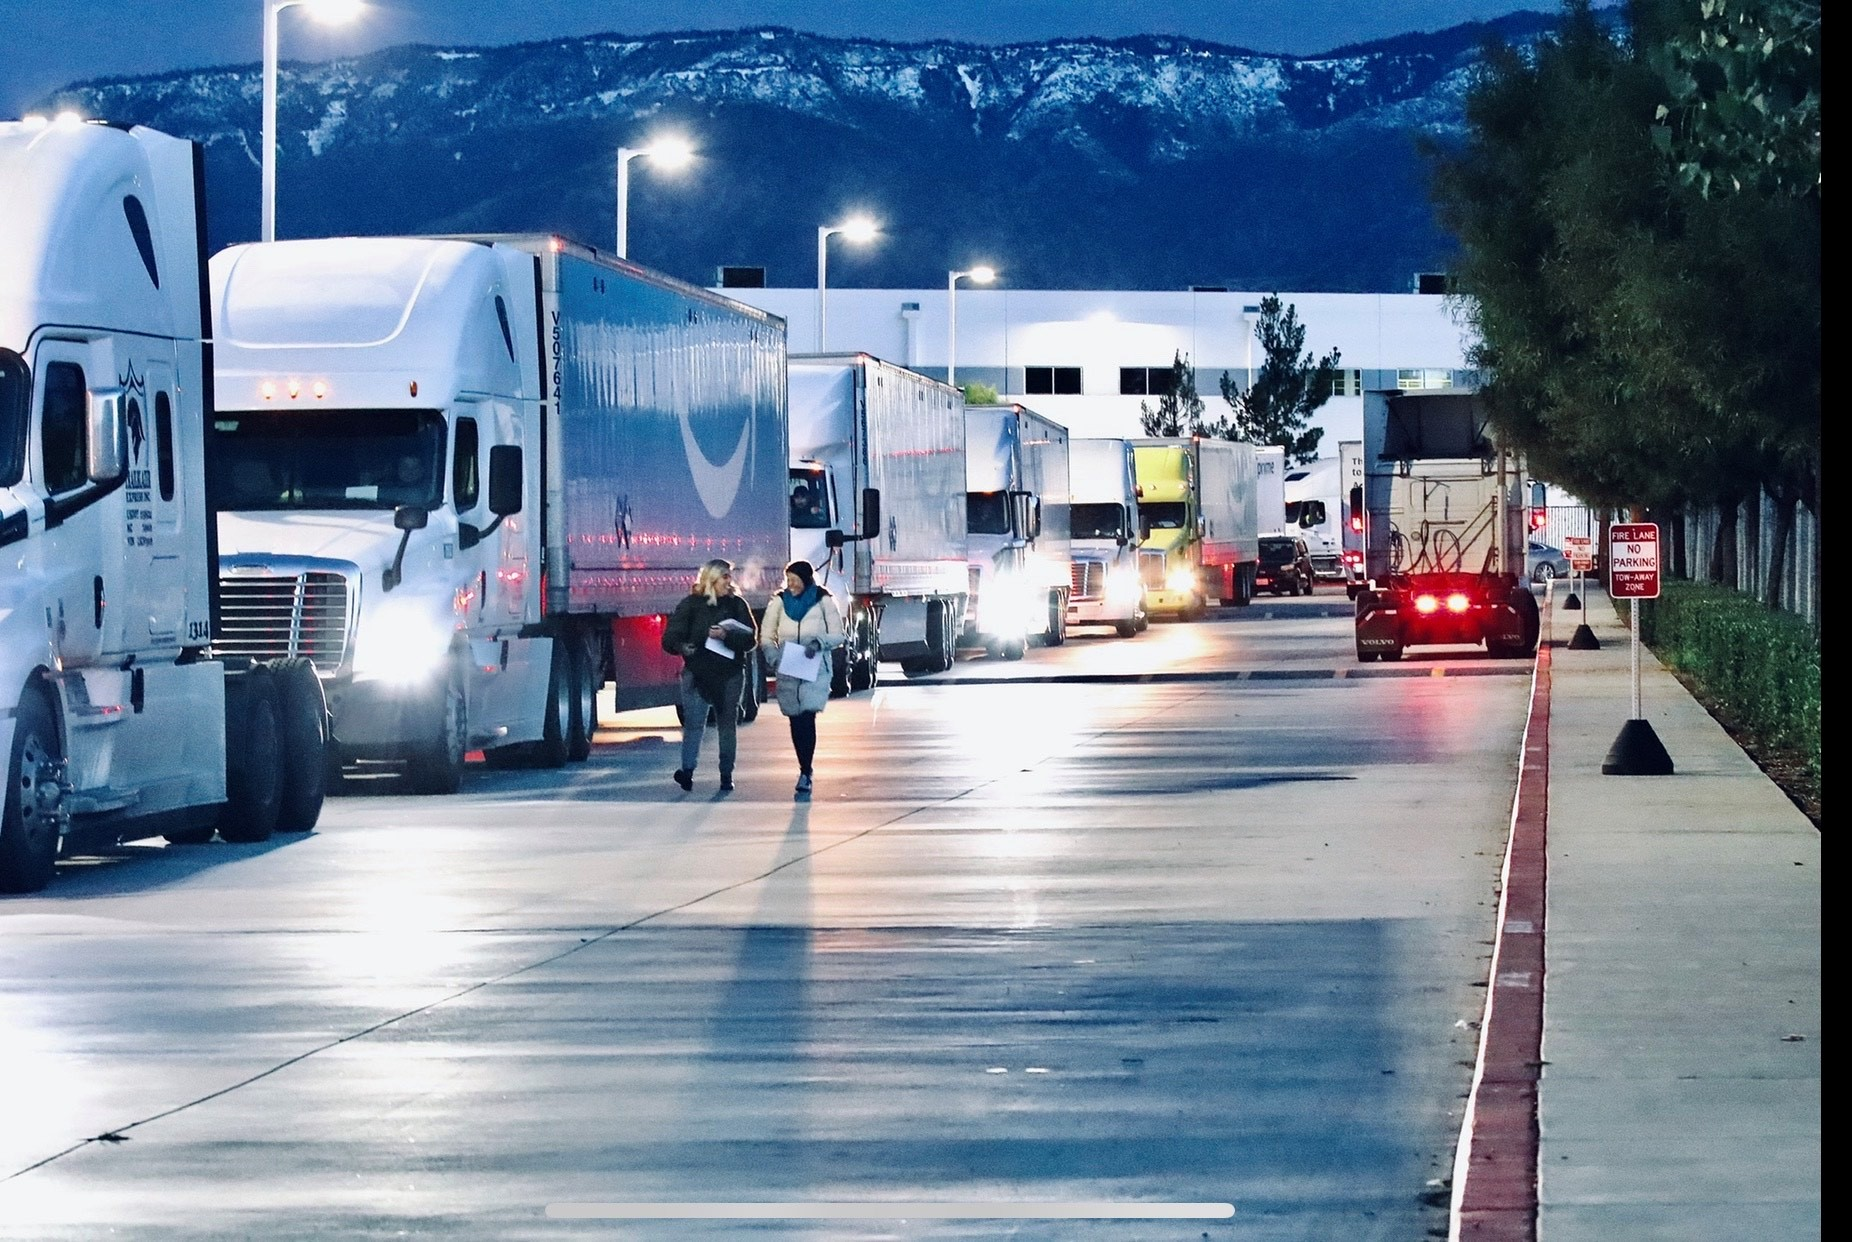 Freight trucks line up outside the Amazon ONT 2 and 5 facilities in San Bernardino. On the side of one truck is the AmazonSmile's logo. The street lights beside the trucks are shining. In the background is a mountainscape with snow. Two pedestrians in heavy coats are walking beside one another adjacent to the trucks.